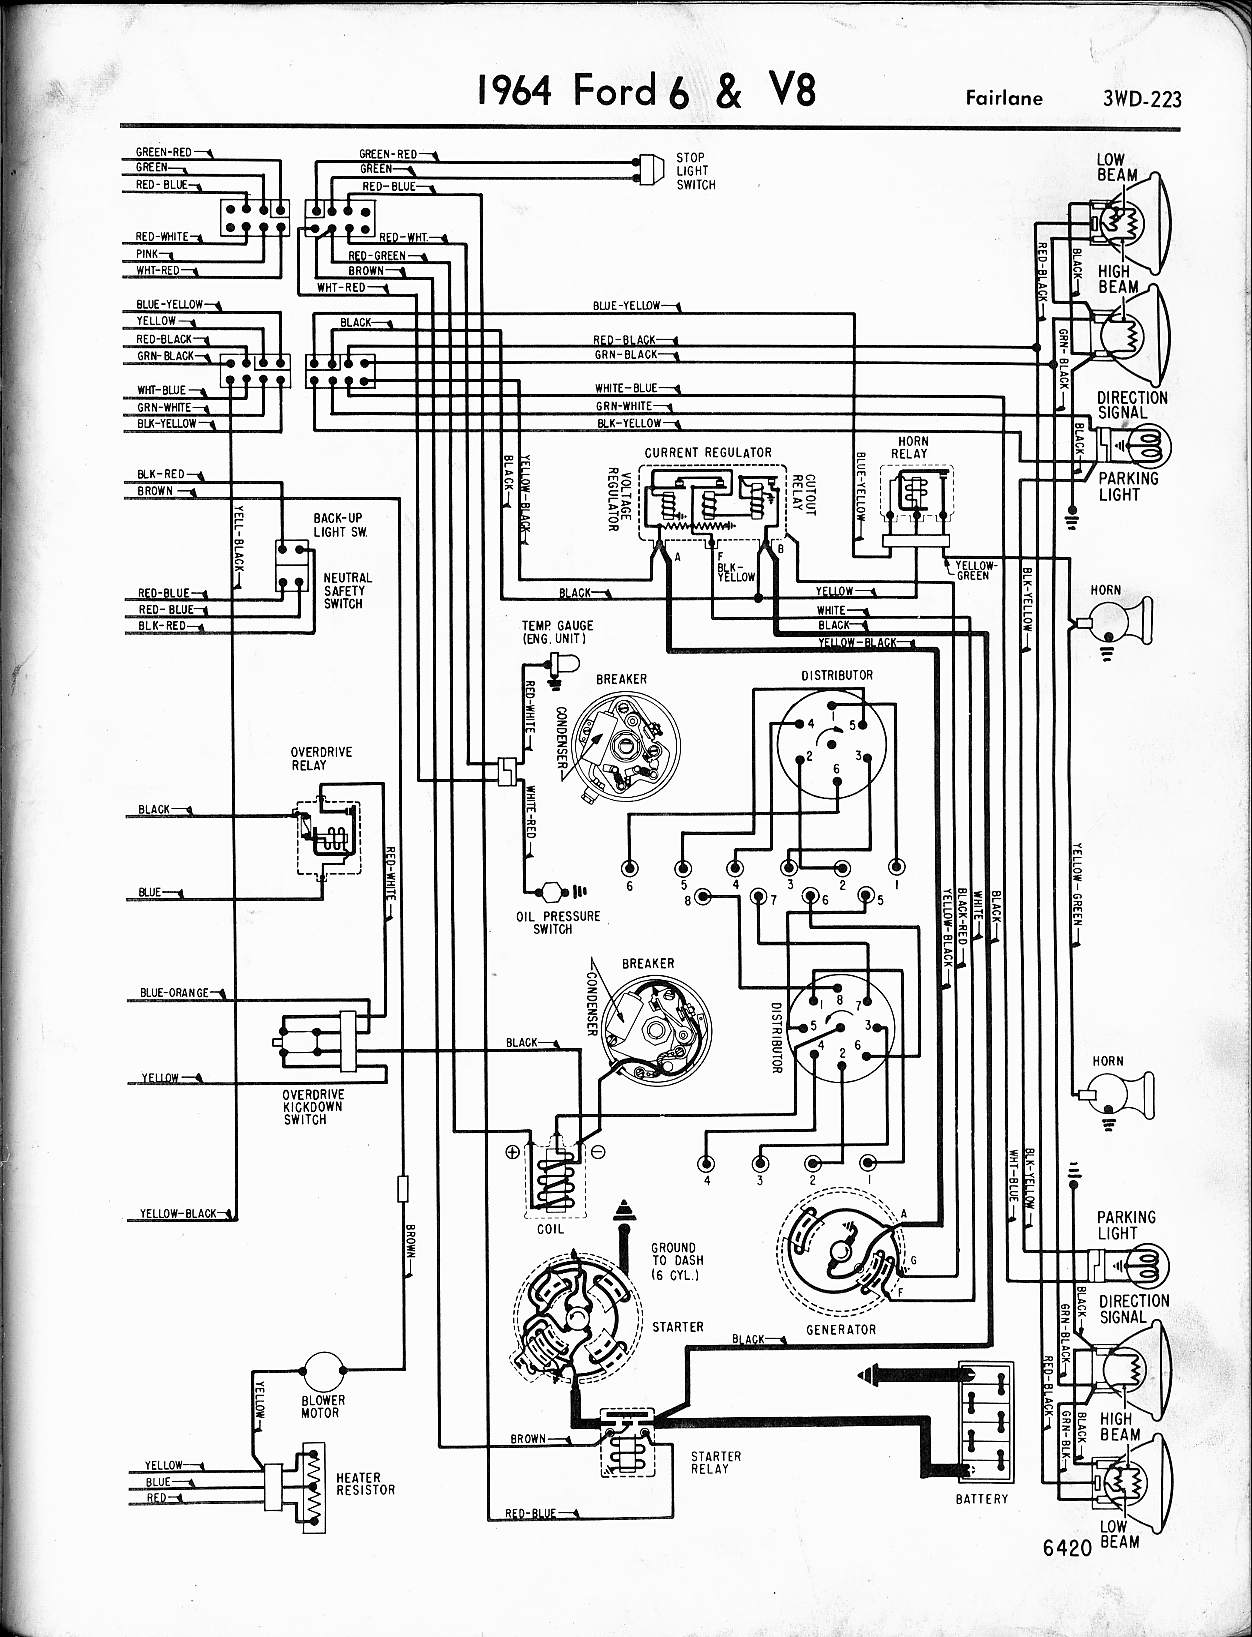 MWire5765 223 1964 ford f100 wiring diagram 1966 ford truck wiring diagram 1964 ford wiring diagram at nearapp.co